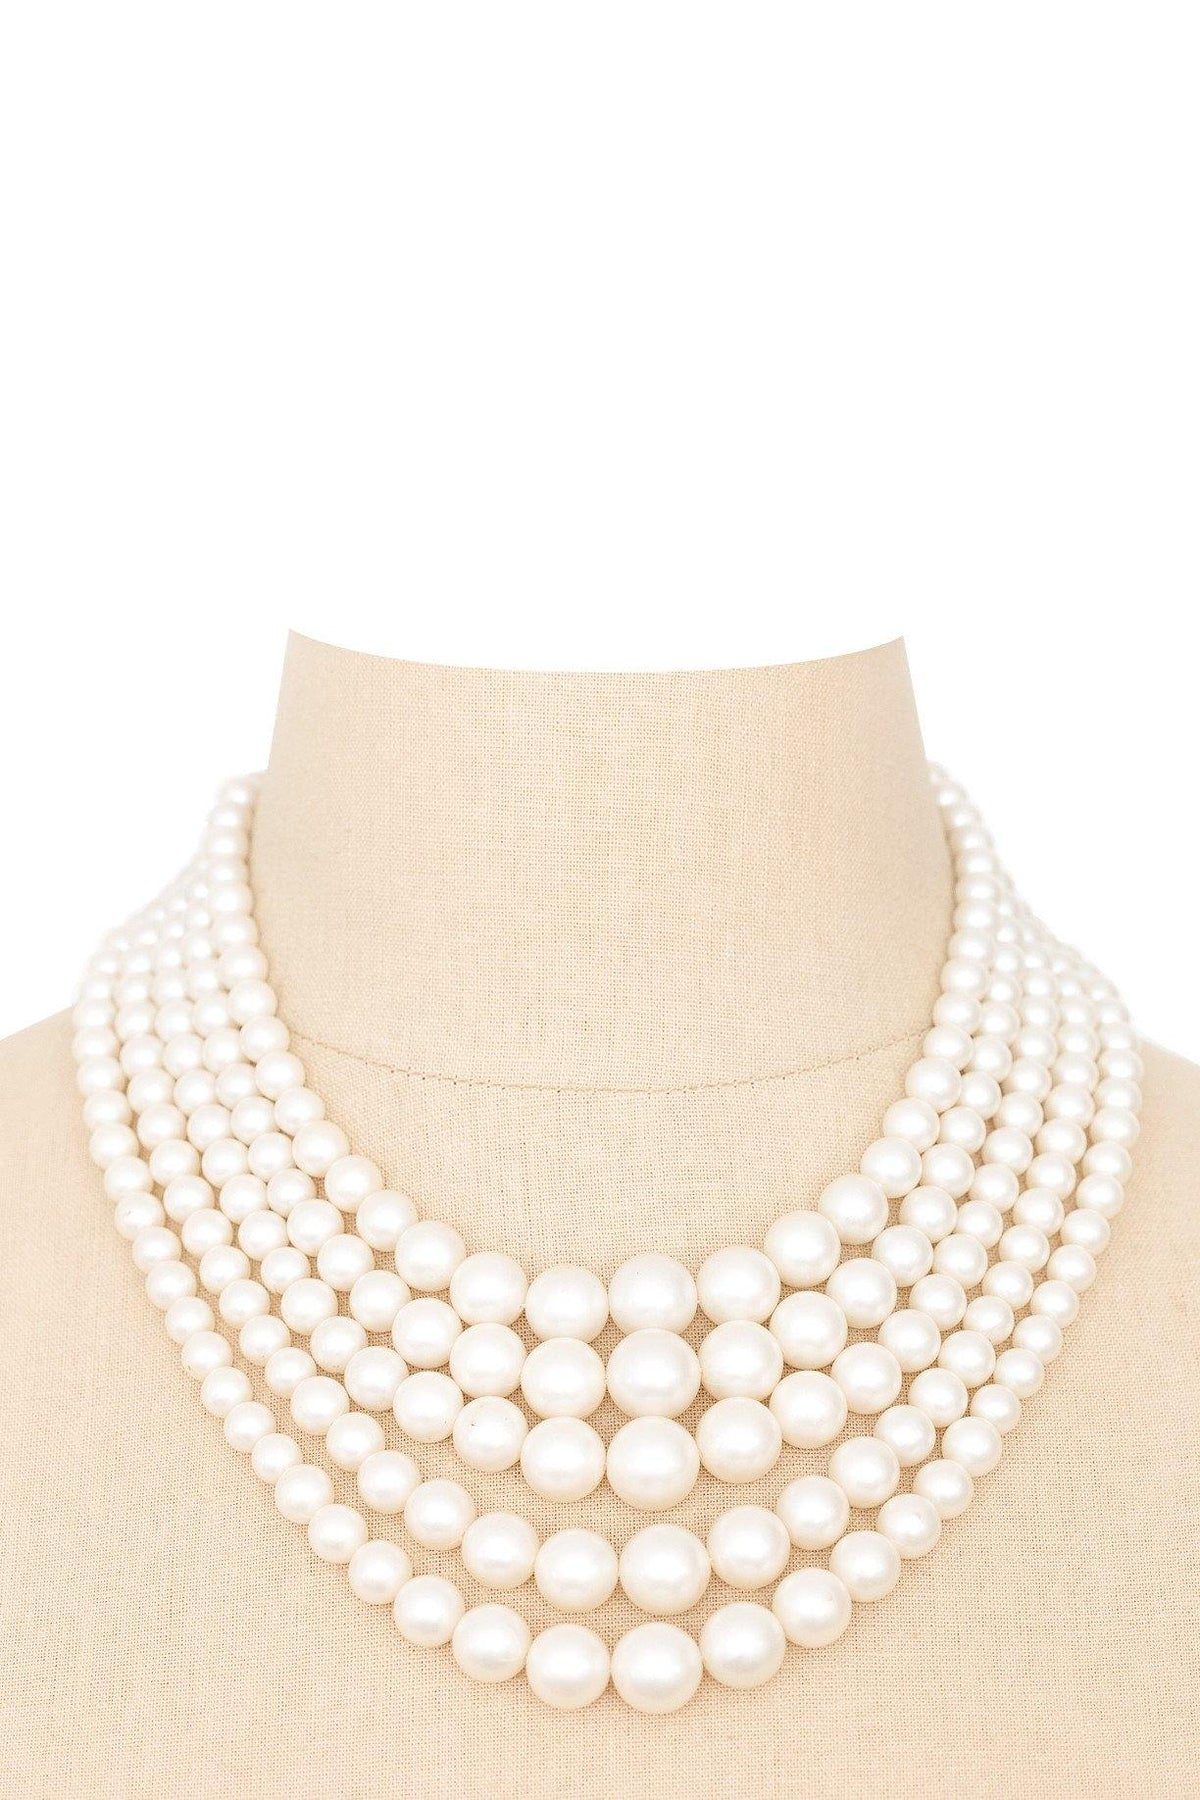 1950's Vintage Pearl Multi Strand Necklace